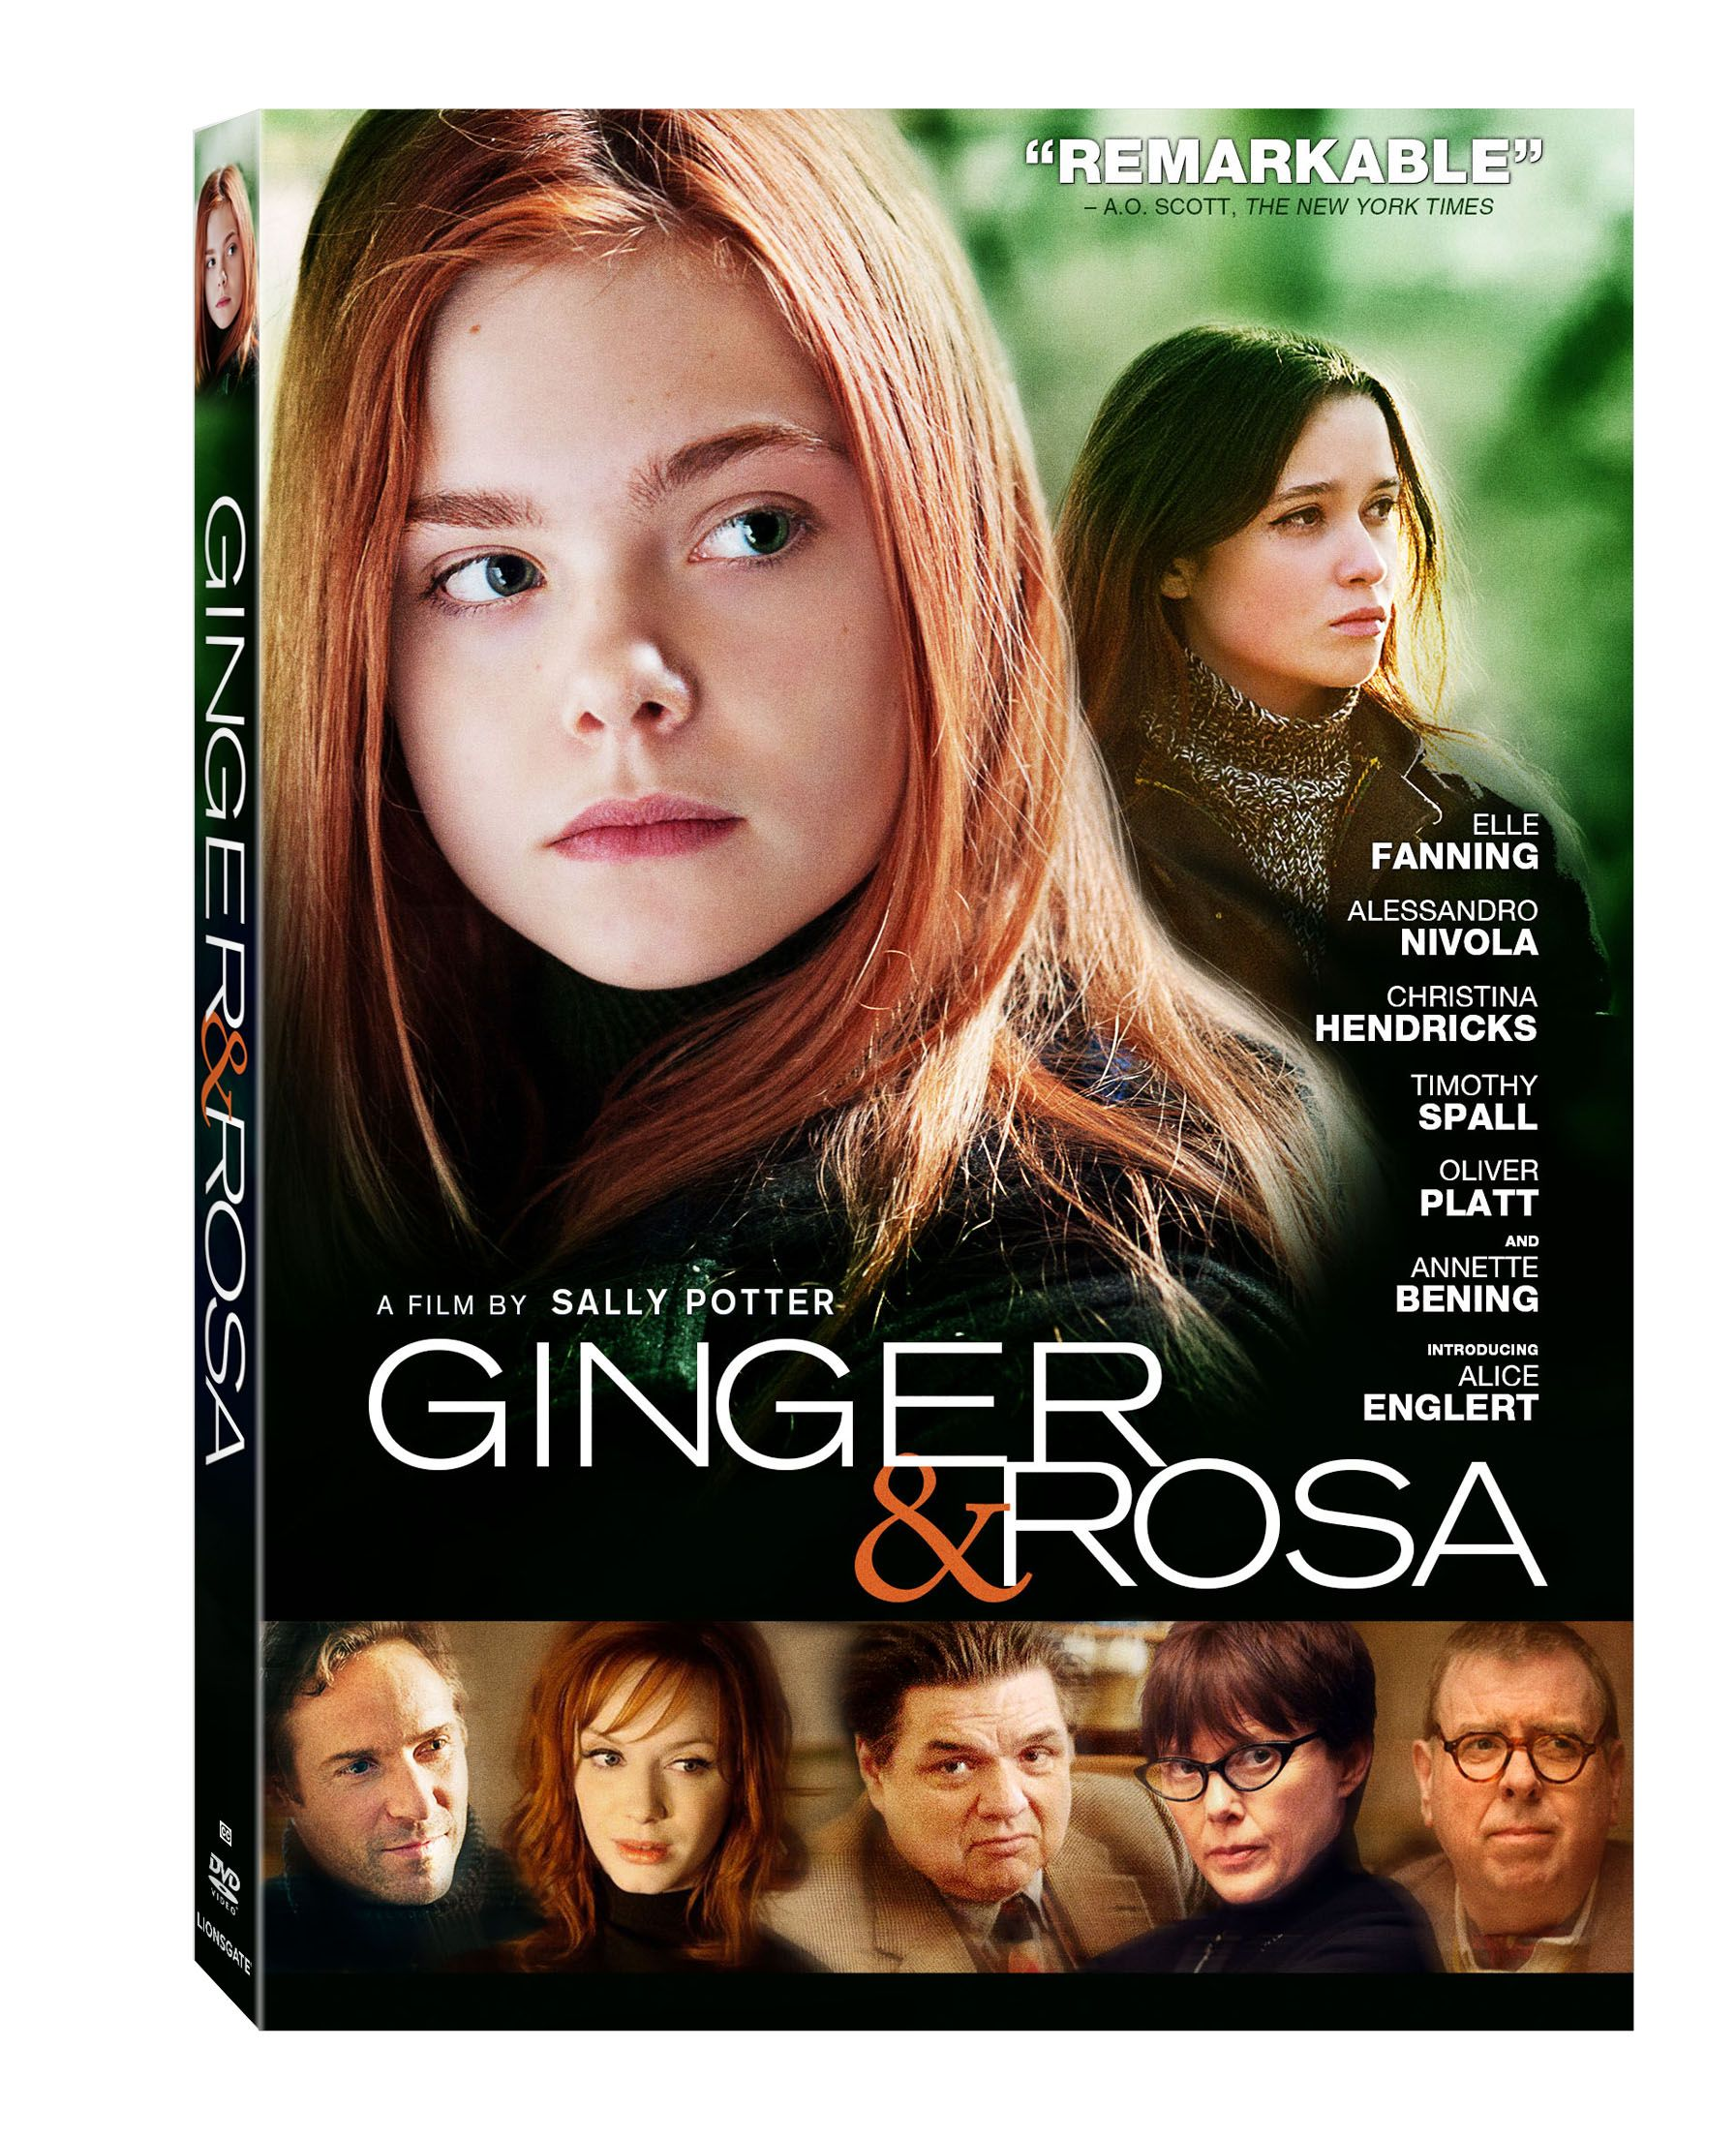 Ginger Rosa 3Dskew Ocard Check Out Deleted Scene From Ginger & Rosa, Coming to DVD July 23